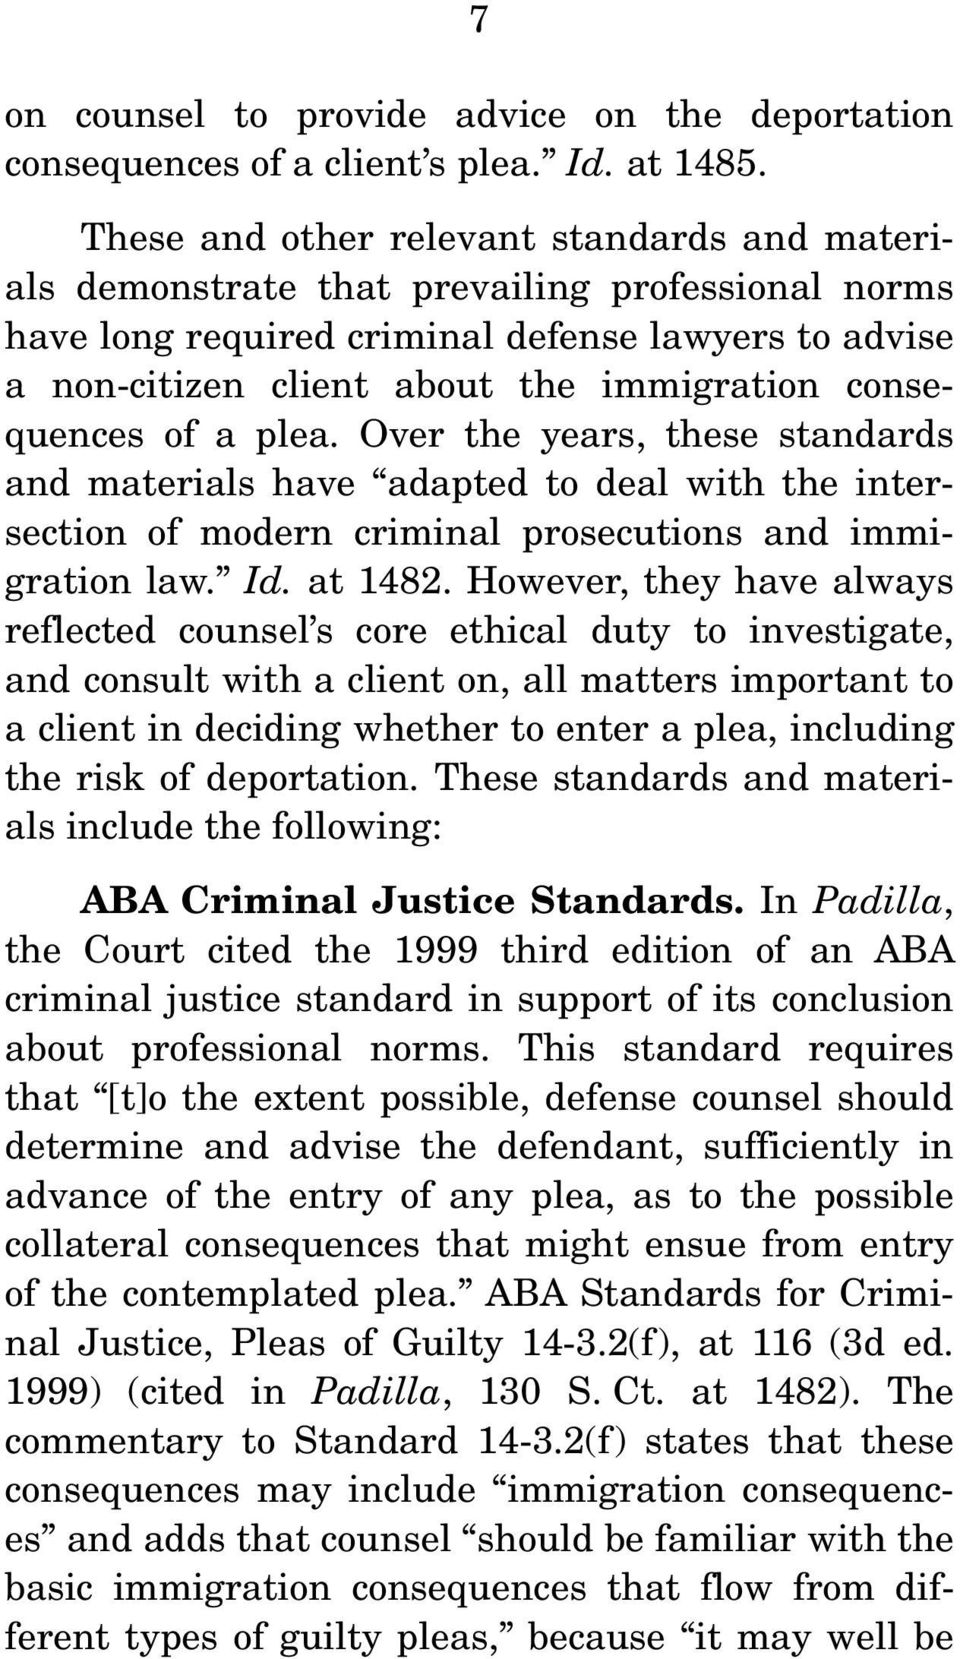 consequences of a plea. Over the years, these standards and materials have adapted to deal with the intersection of modern criminal prosecutions and immigration law. Id. at 1482.